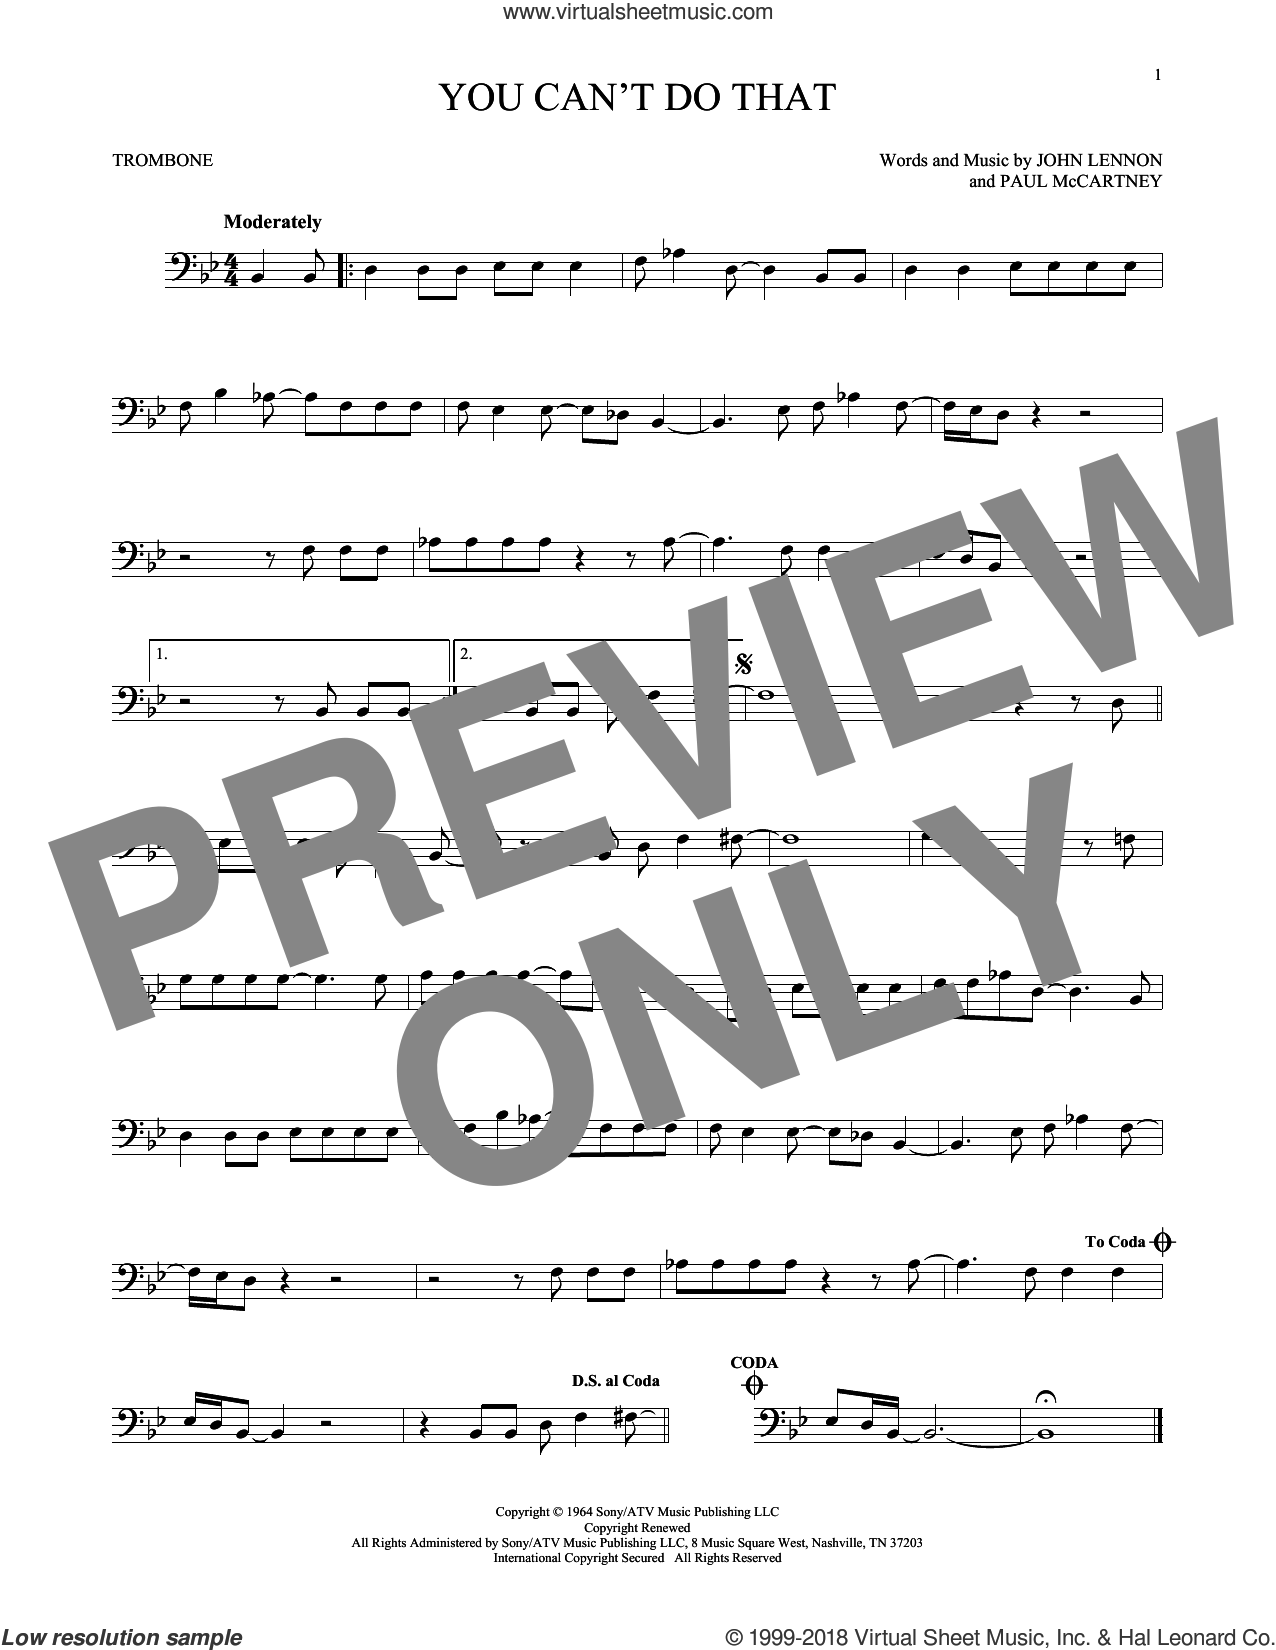 You Can't Do That sheet music for trombone solo by The Beatles, John Lennon and Paul McCartney, intermediate. Score Image Preview.